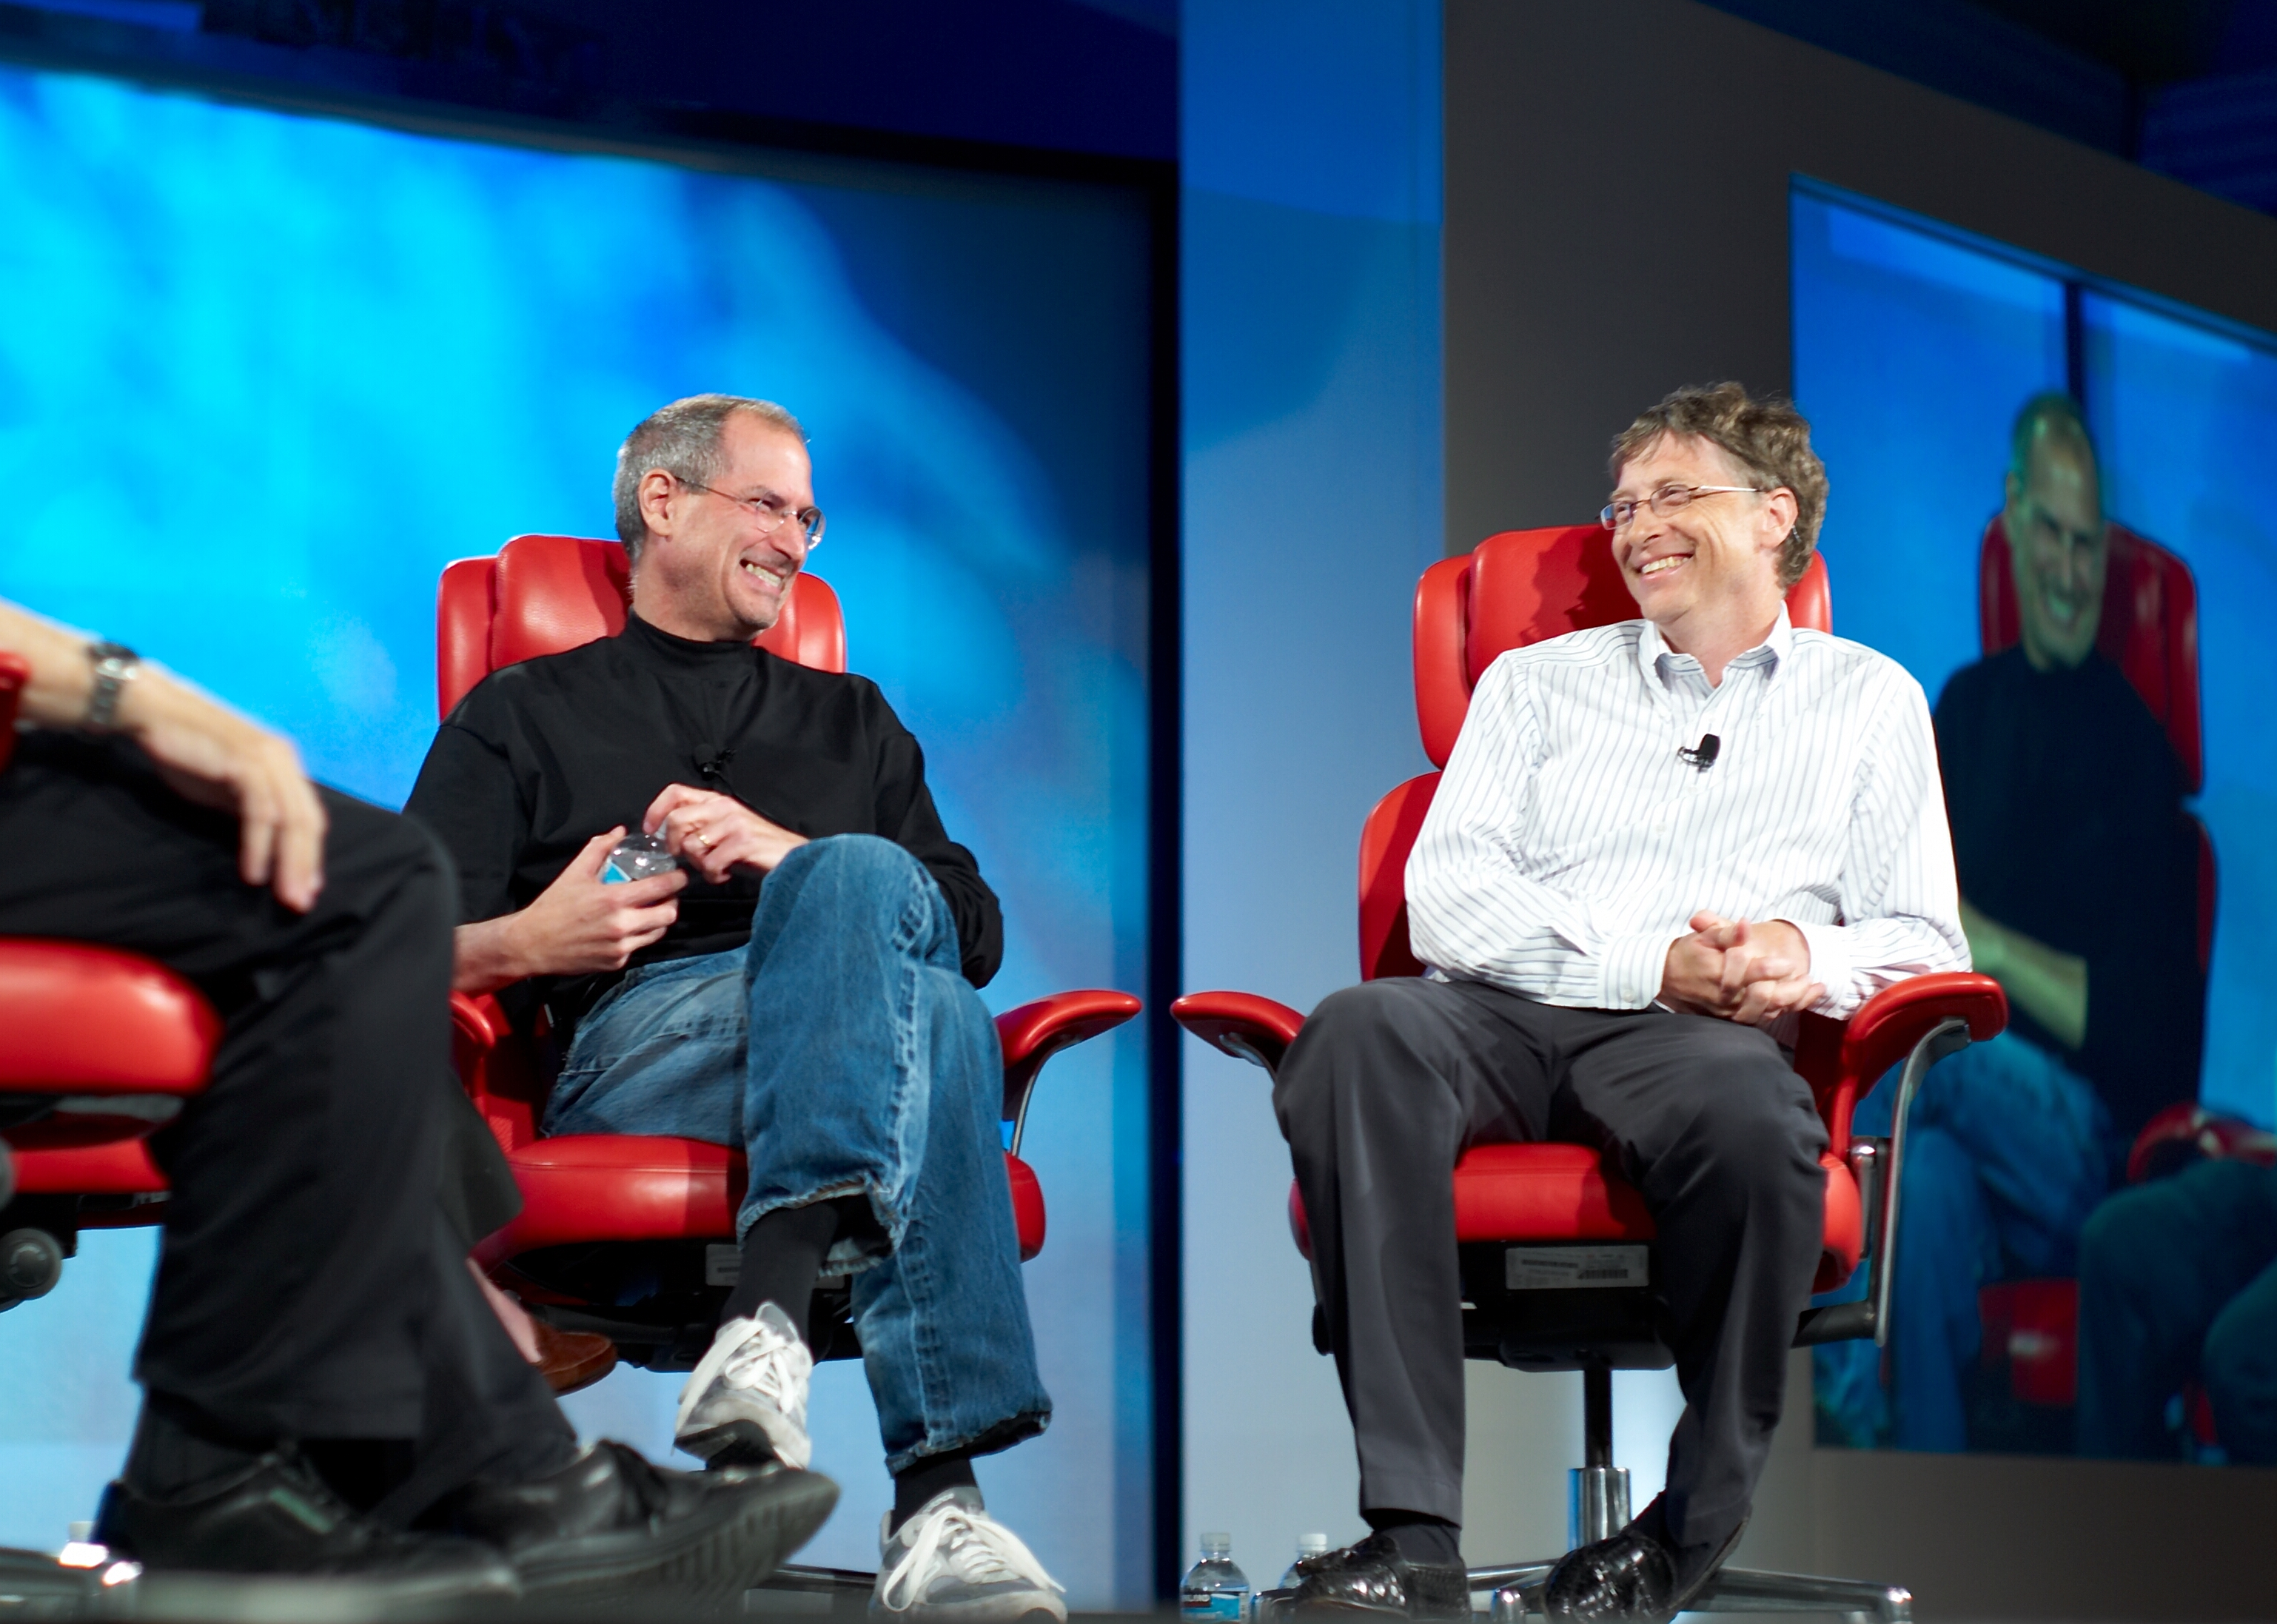 Steve_Jobs_and_Bill_Gates_522695099